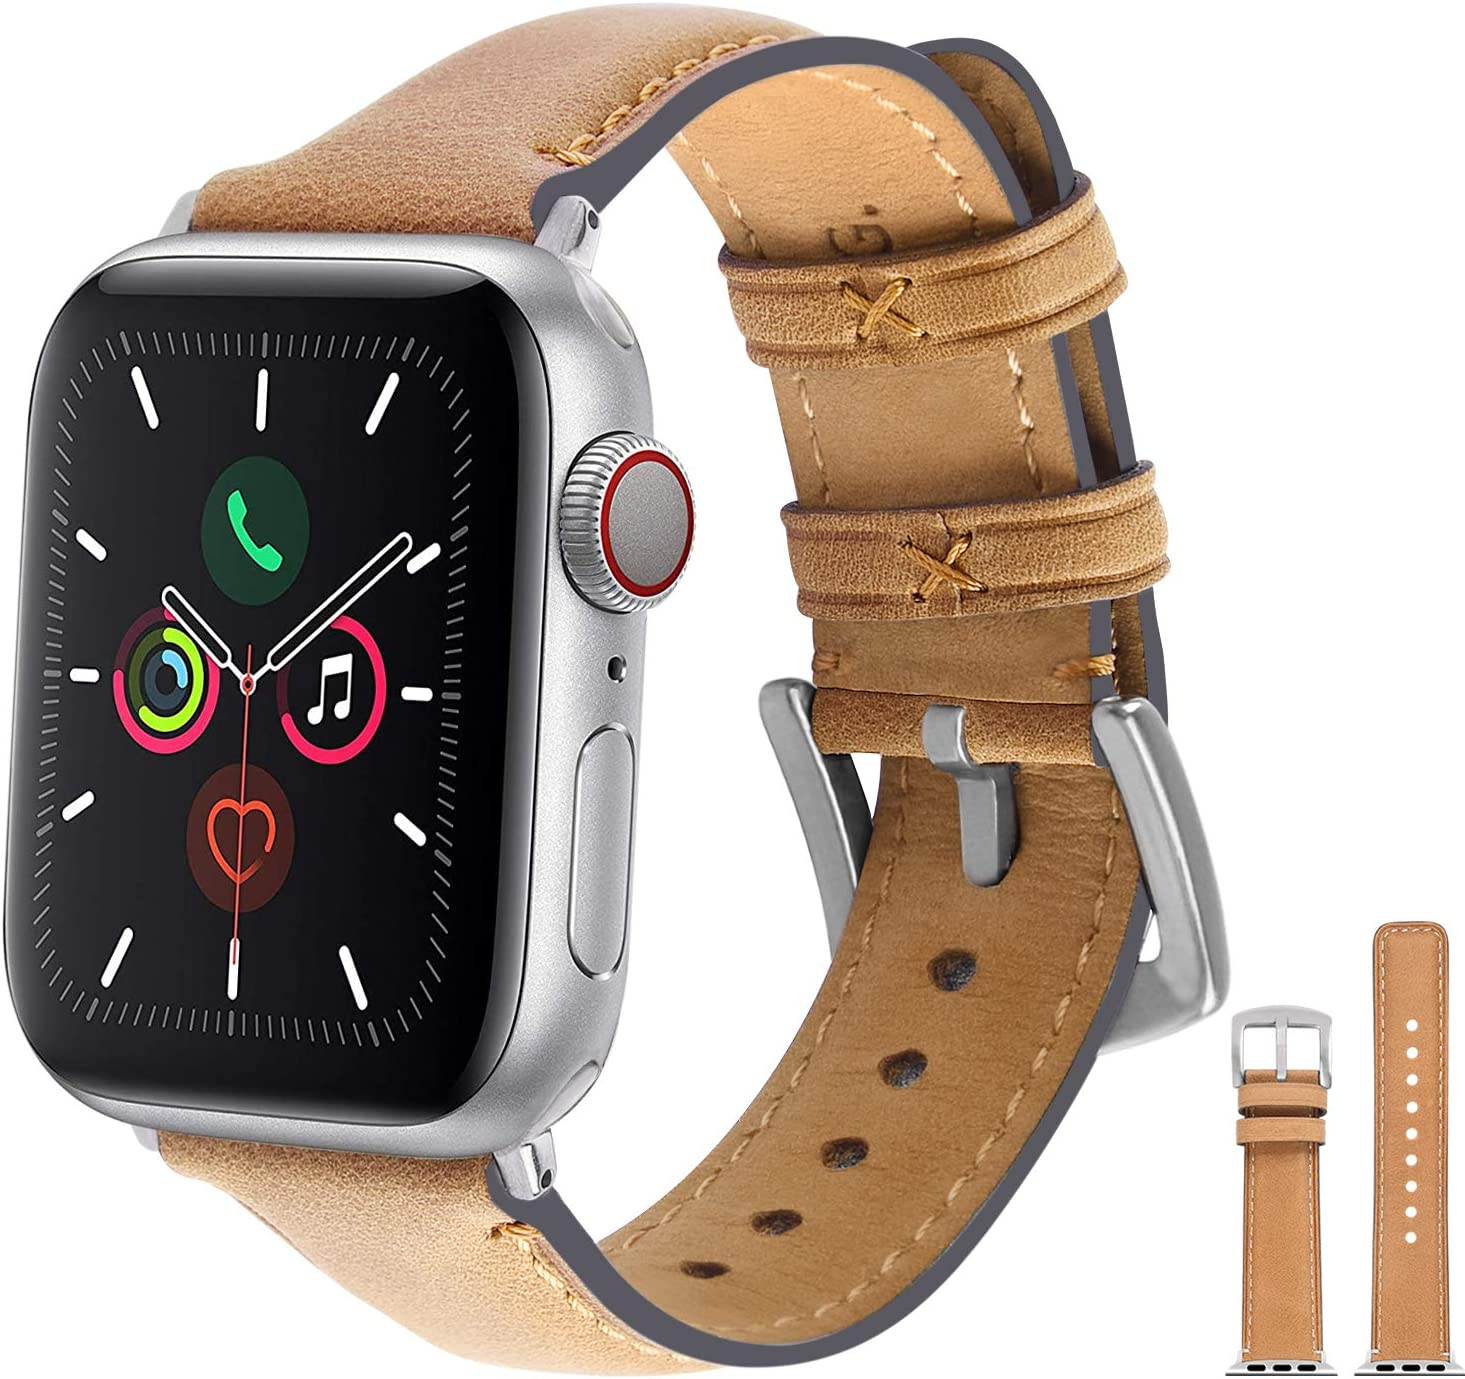 Fullmosa Leather Watch Strap Compatible with Apple Watch Band 38mm 40mm 42mm 44mm, Genuine Leather Replacement Band Compatible with Apple Watch Series 5, Series 4,Series 3,Series 2,Series 1 Men Women